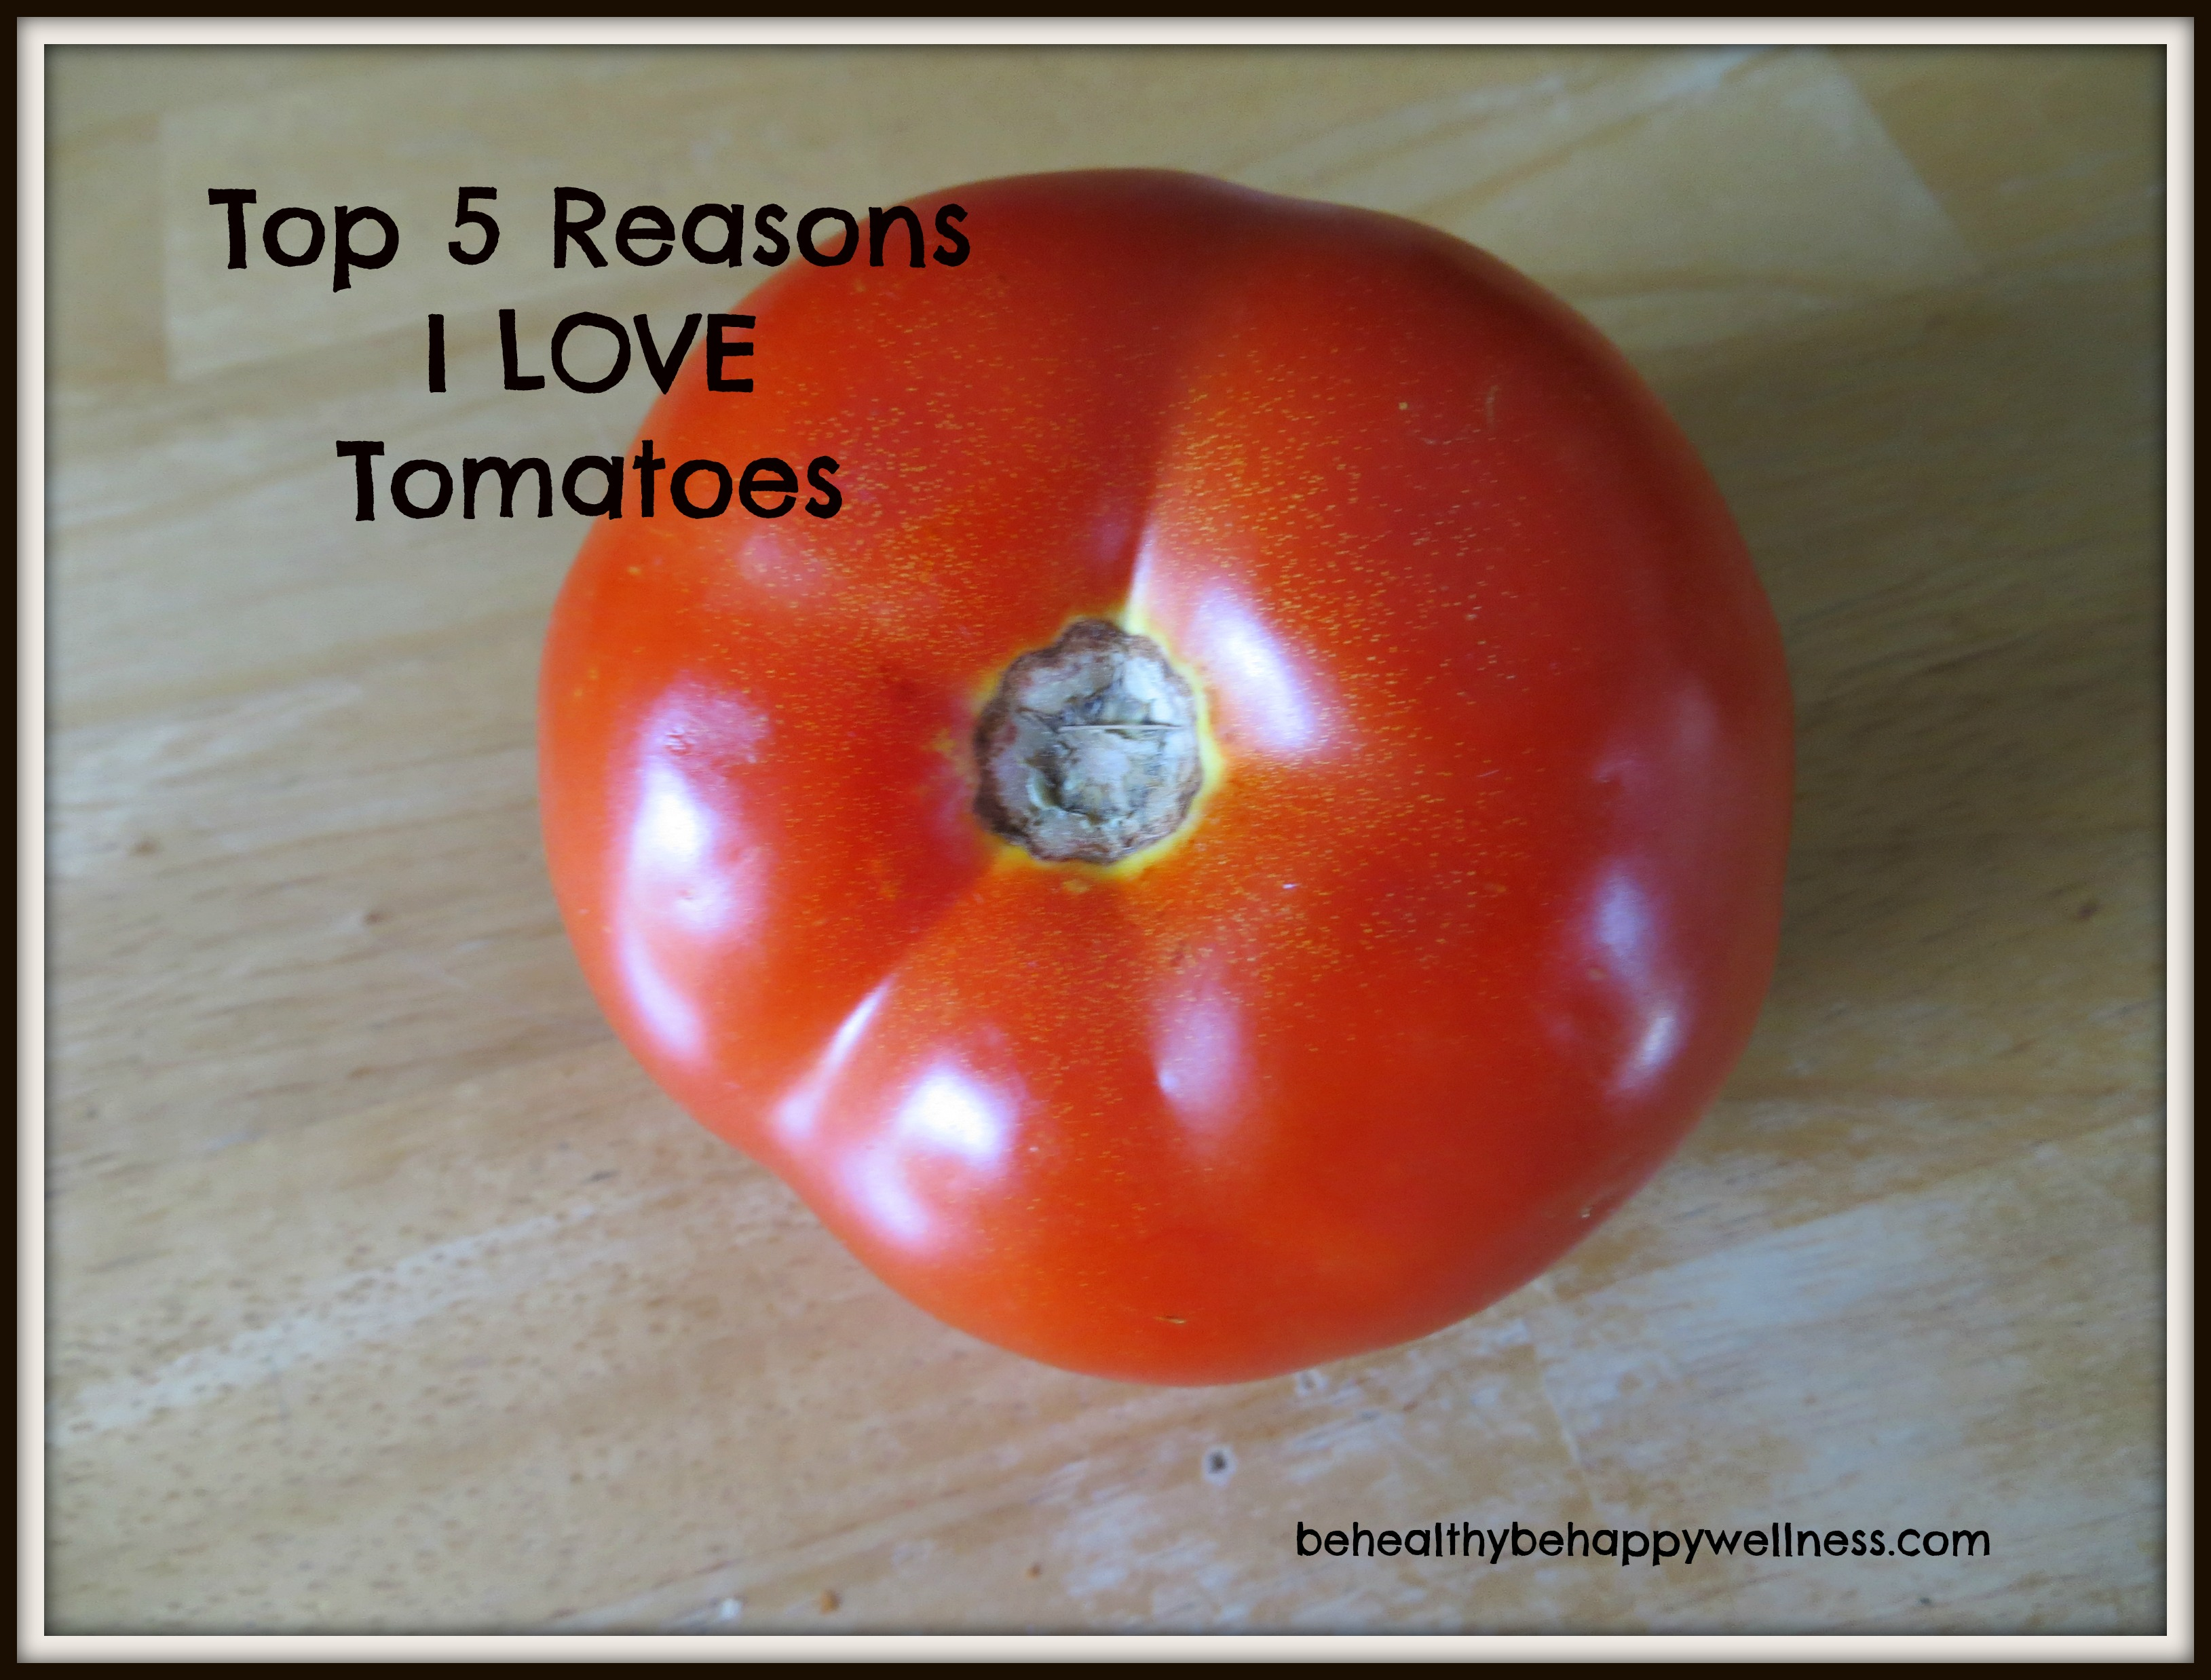 Top 5 Reasons to Love tomatoes